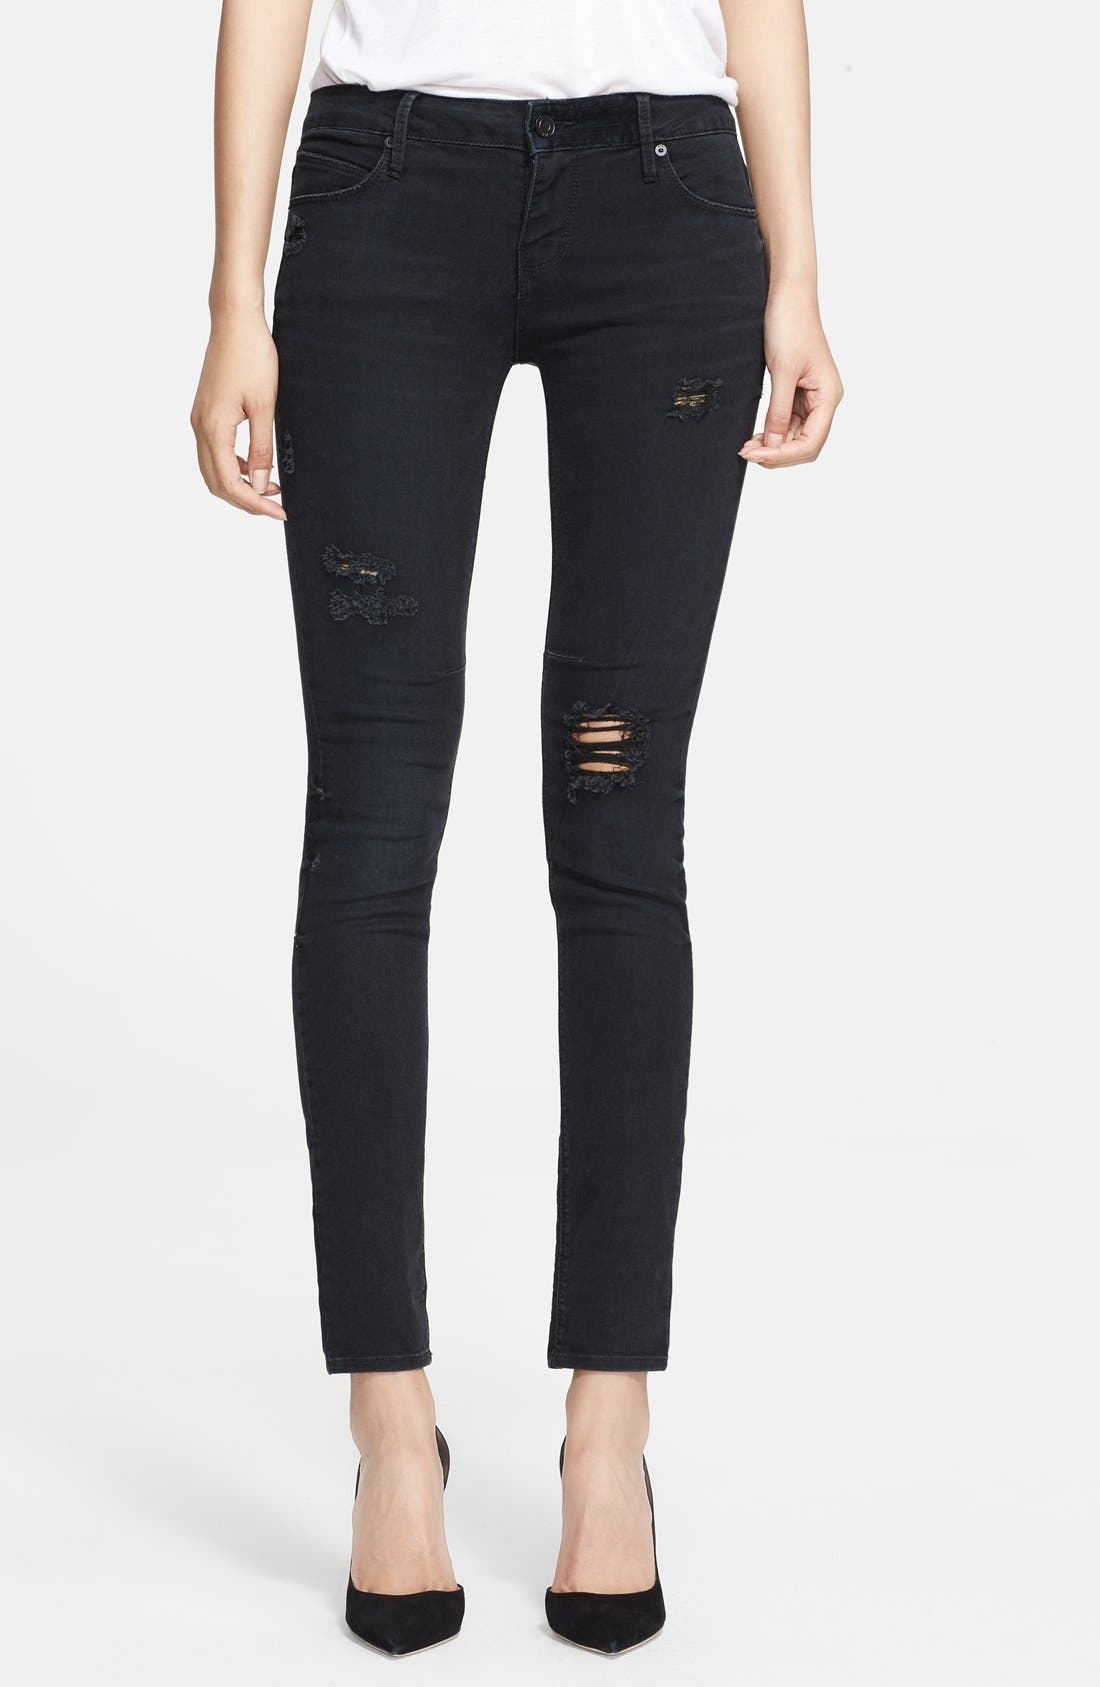 Alternate Image 1 Selected - RtA Skinny Jeans (Black Destroyed)